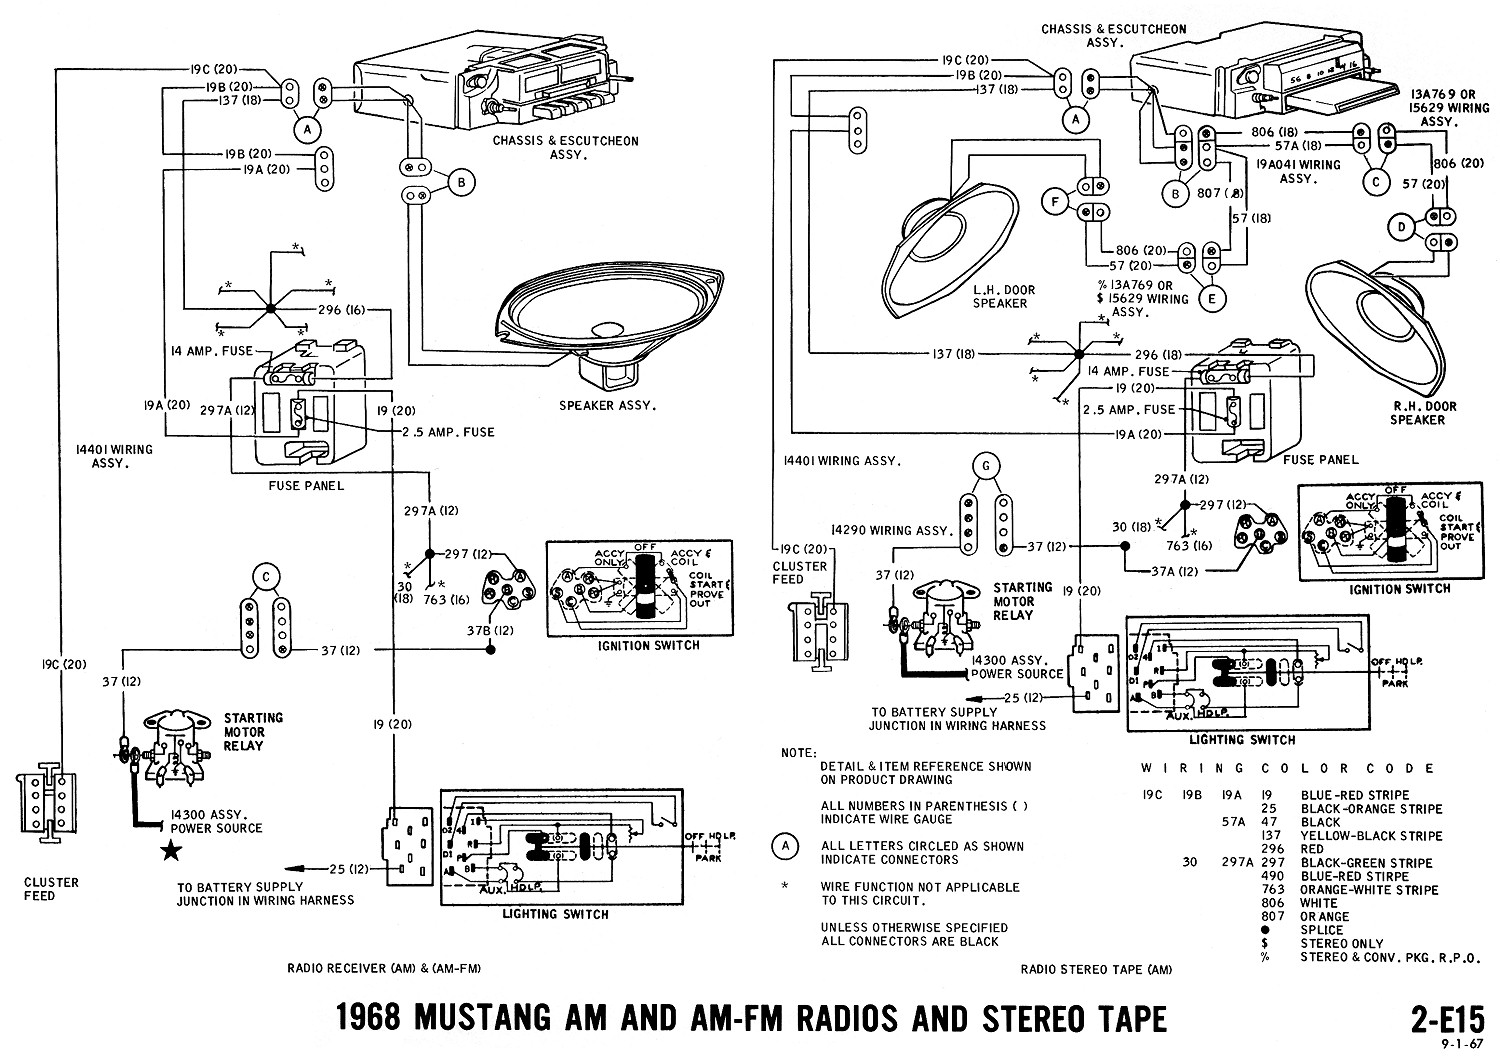 08 Buick Enclave Wiring Diagram besides 1968 Mustang Wiring Diagrams also 2002 Chevy Pickup Wiring Diagram additionally 1994 Chevy Astro Van Wiring Diagram likewise 1993 Chevy Suburban Wiring Diagram. on silverado radio wiring diagram